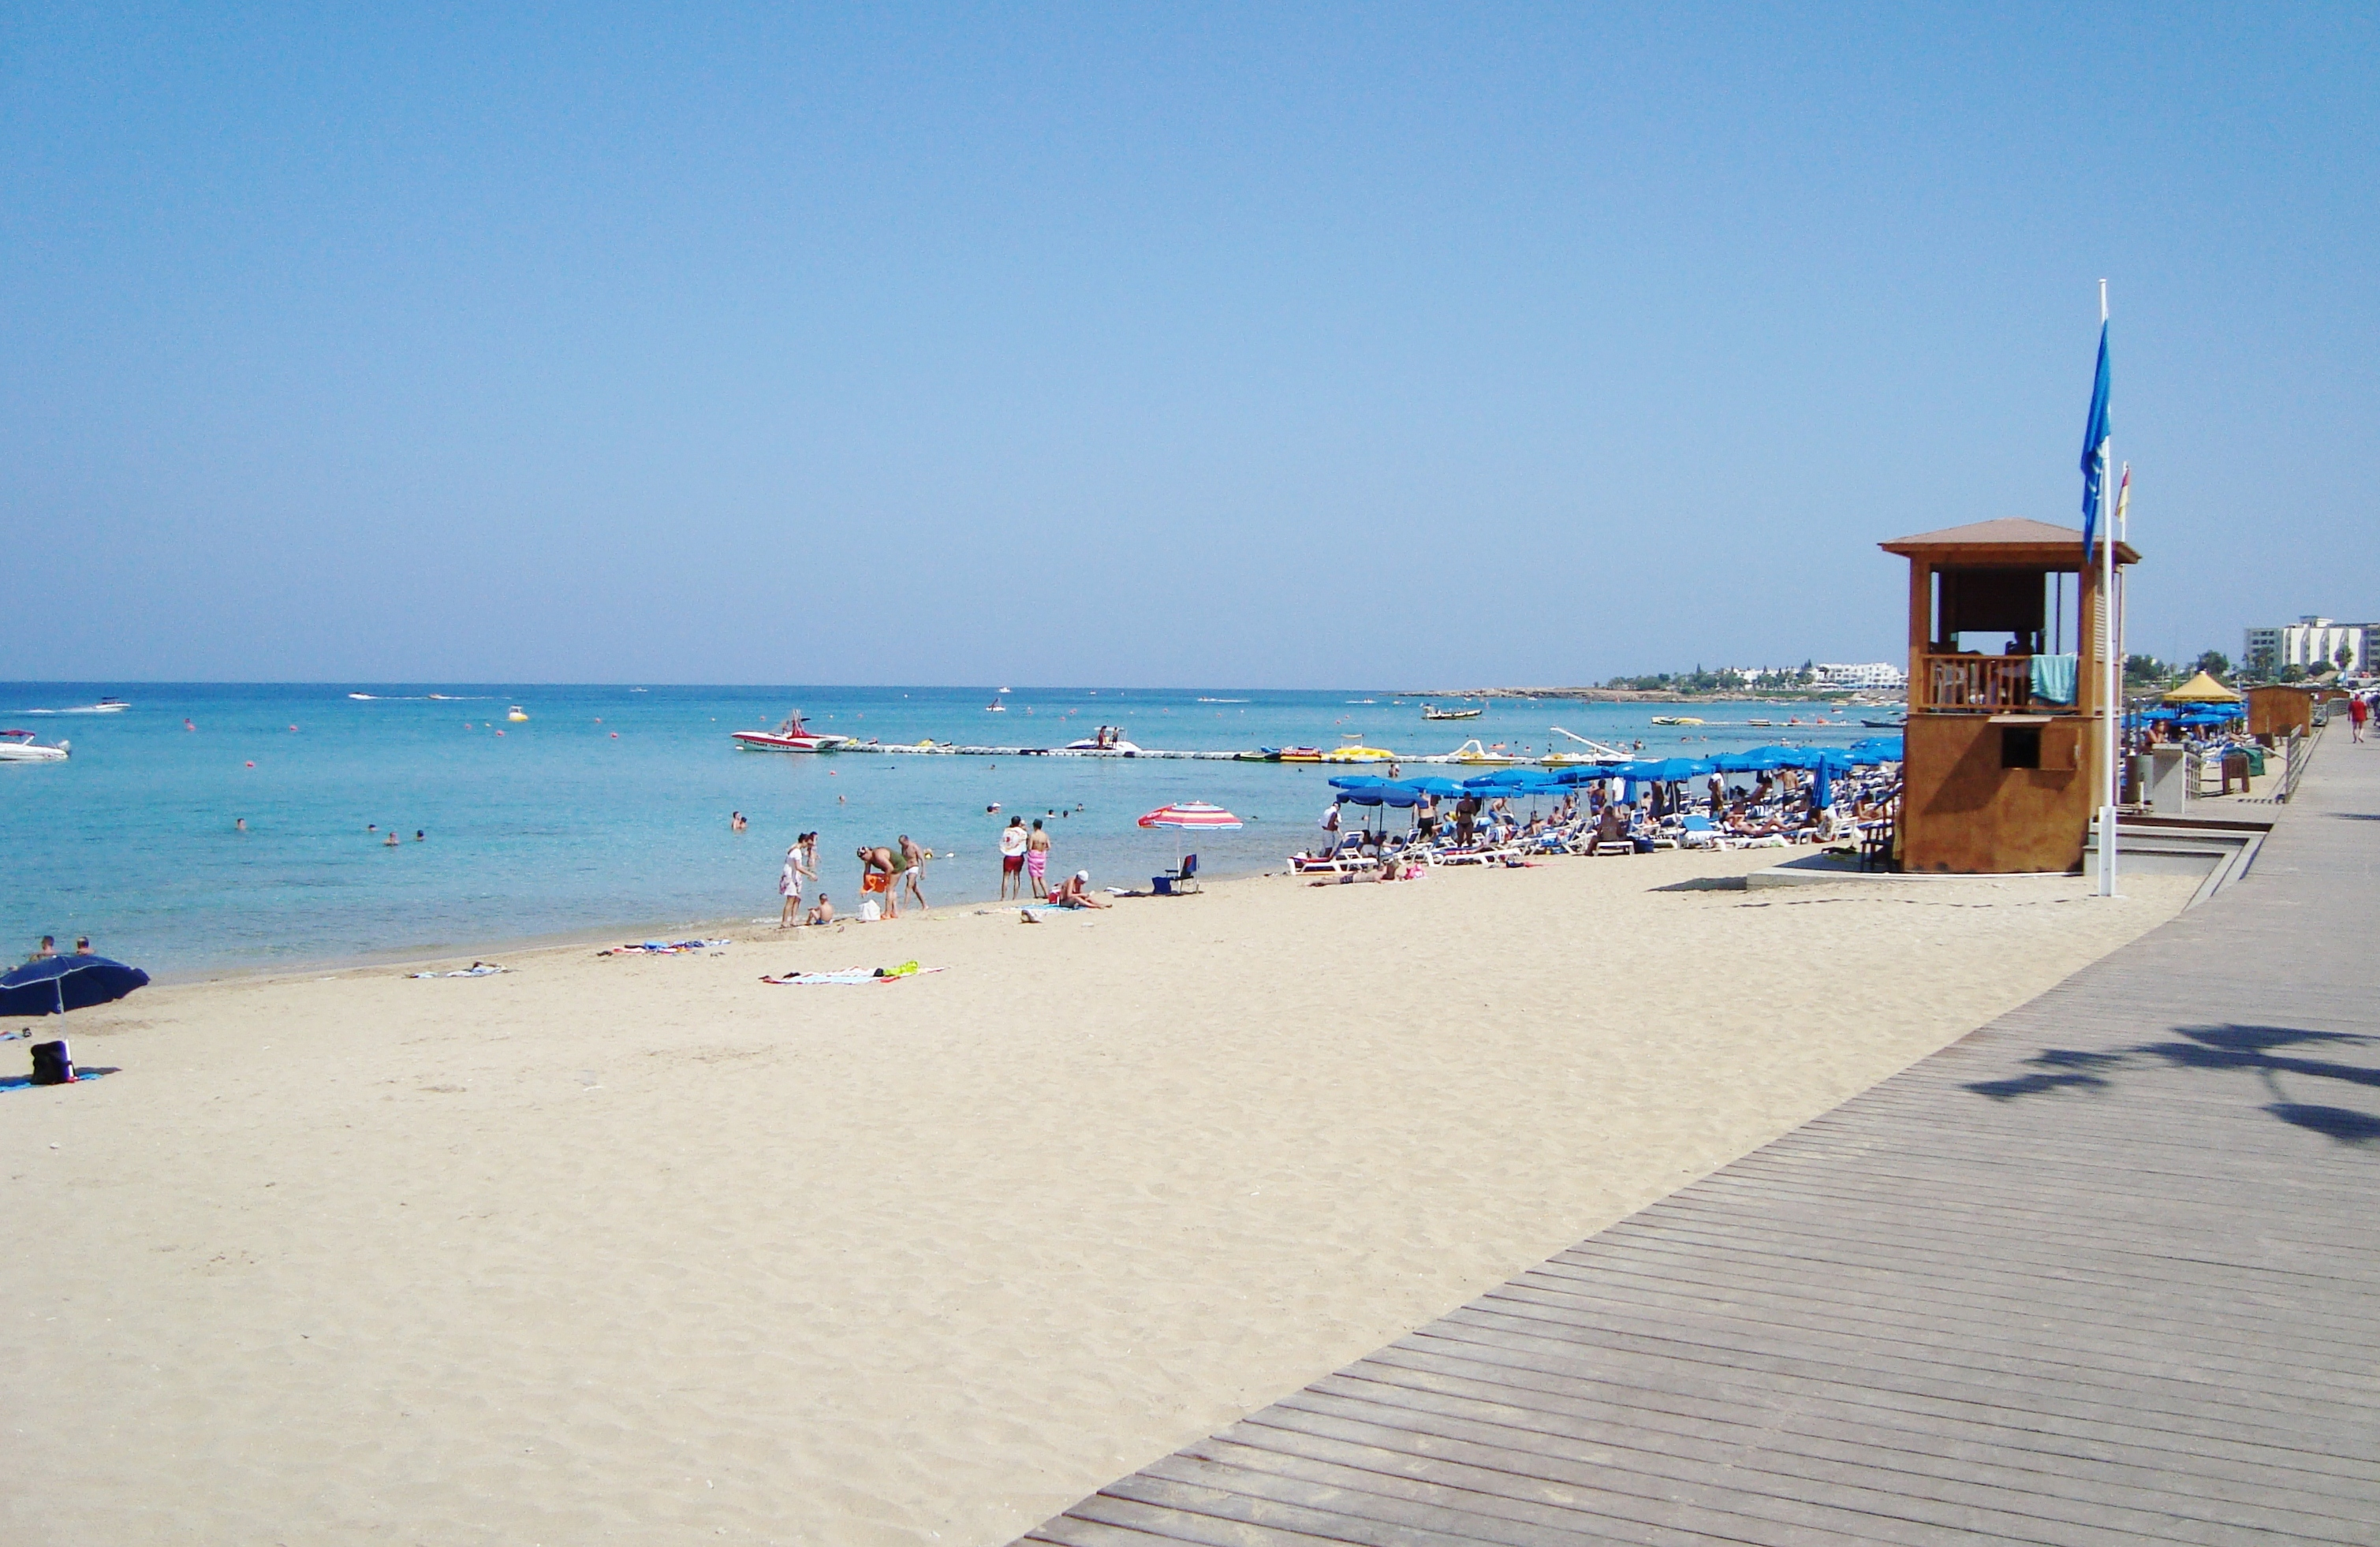 Protaras Cyprus  city photo : Description Protaras beach at Paralimni in the Republic of Cyprus